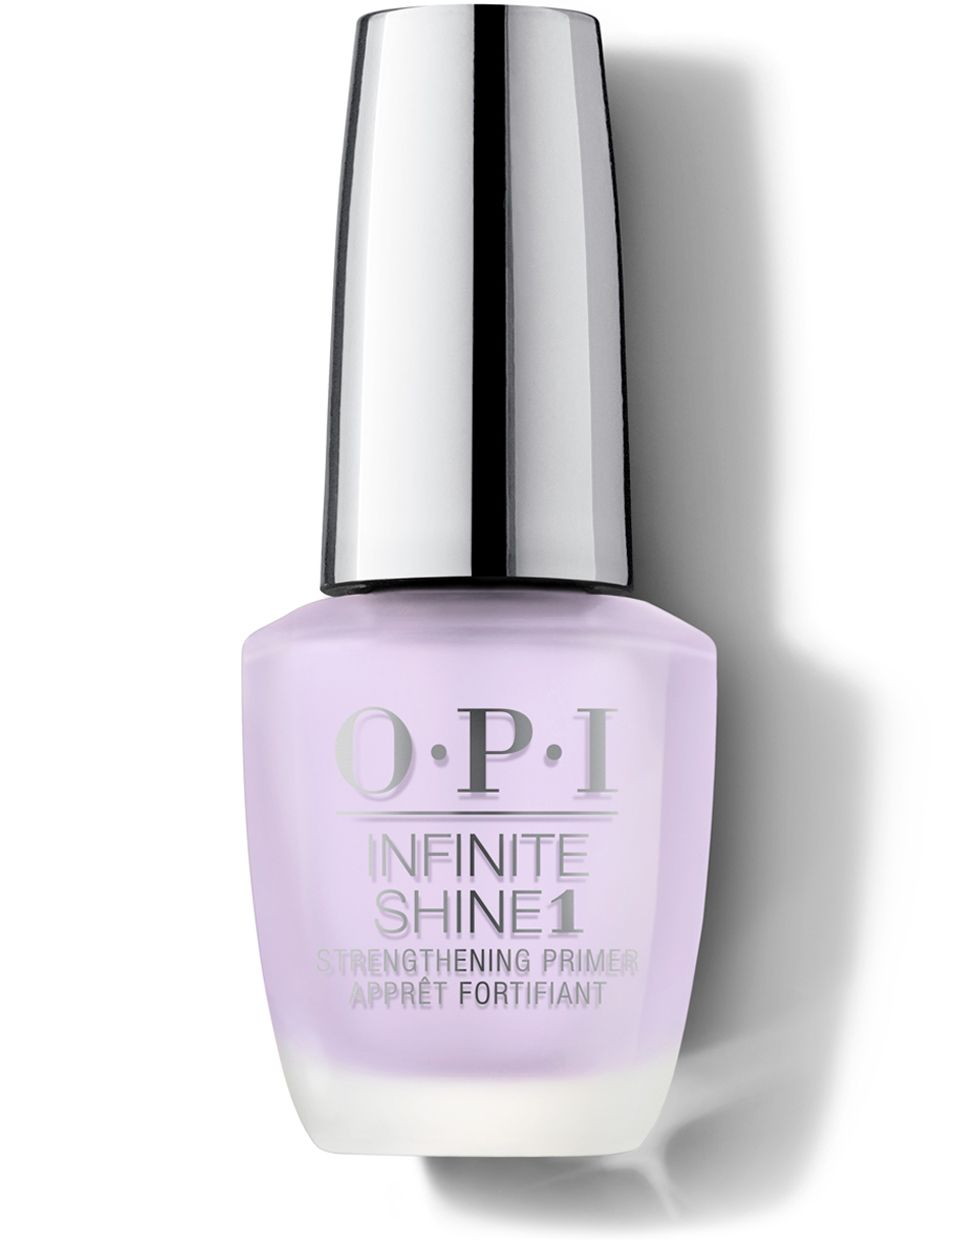 Nail strengthening treatment that works like a base coat, helping to ...